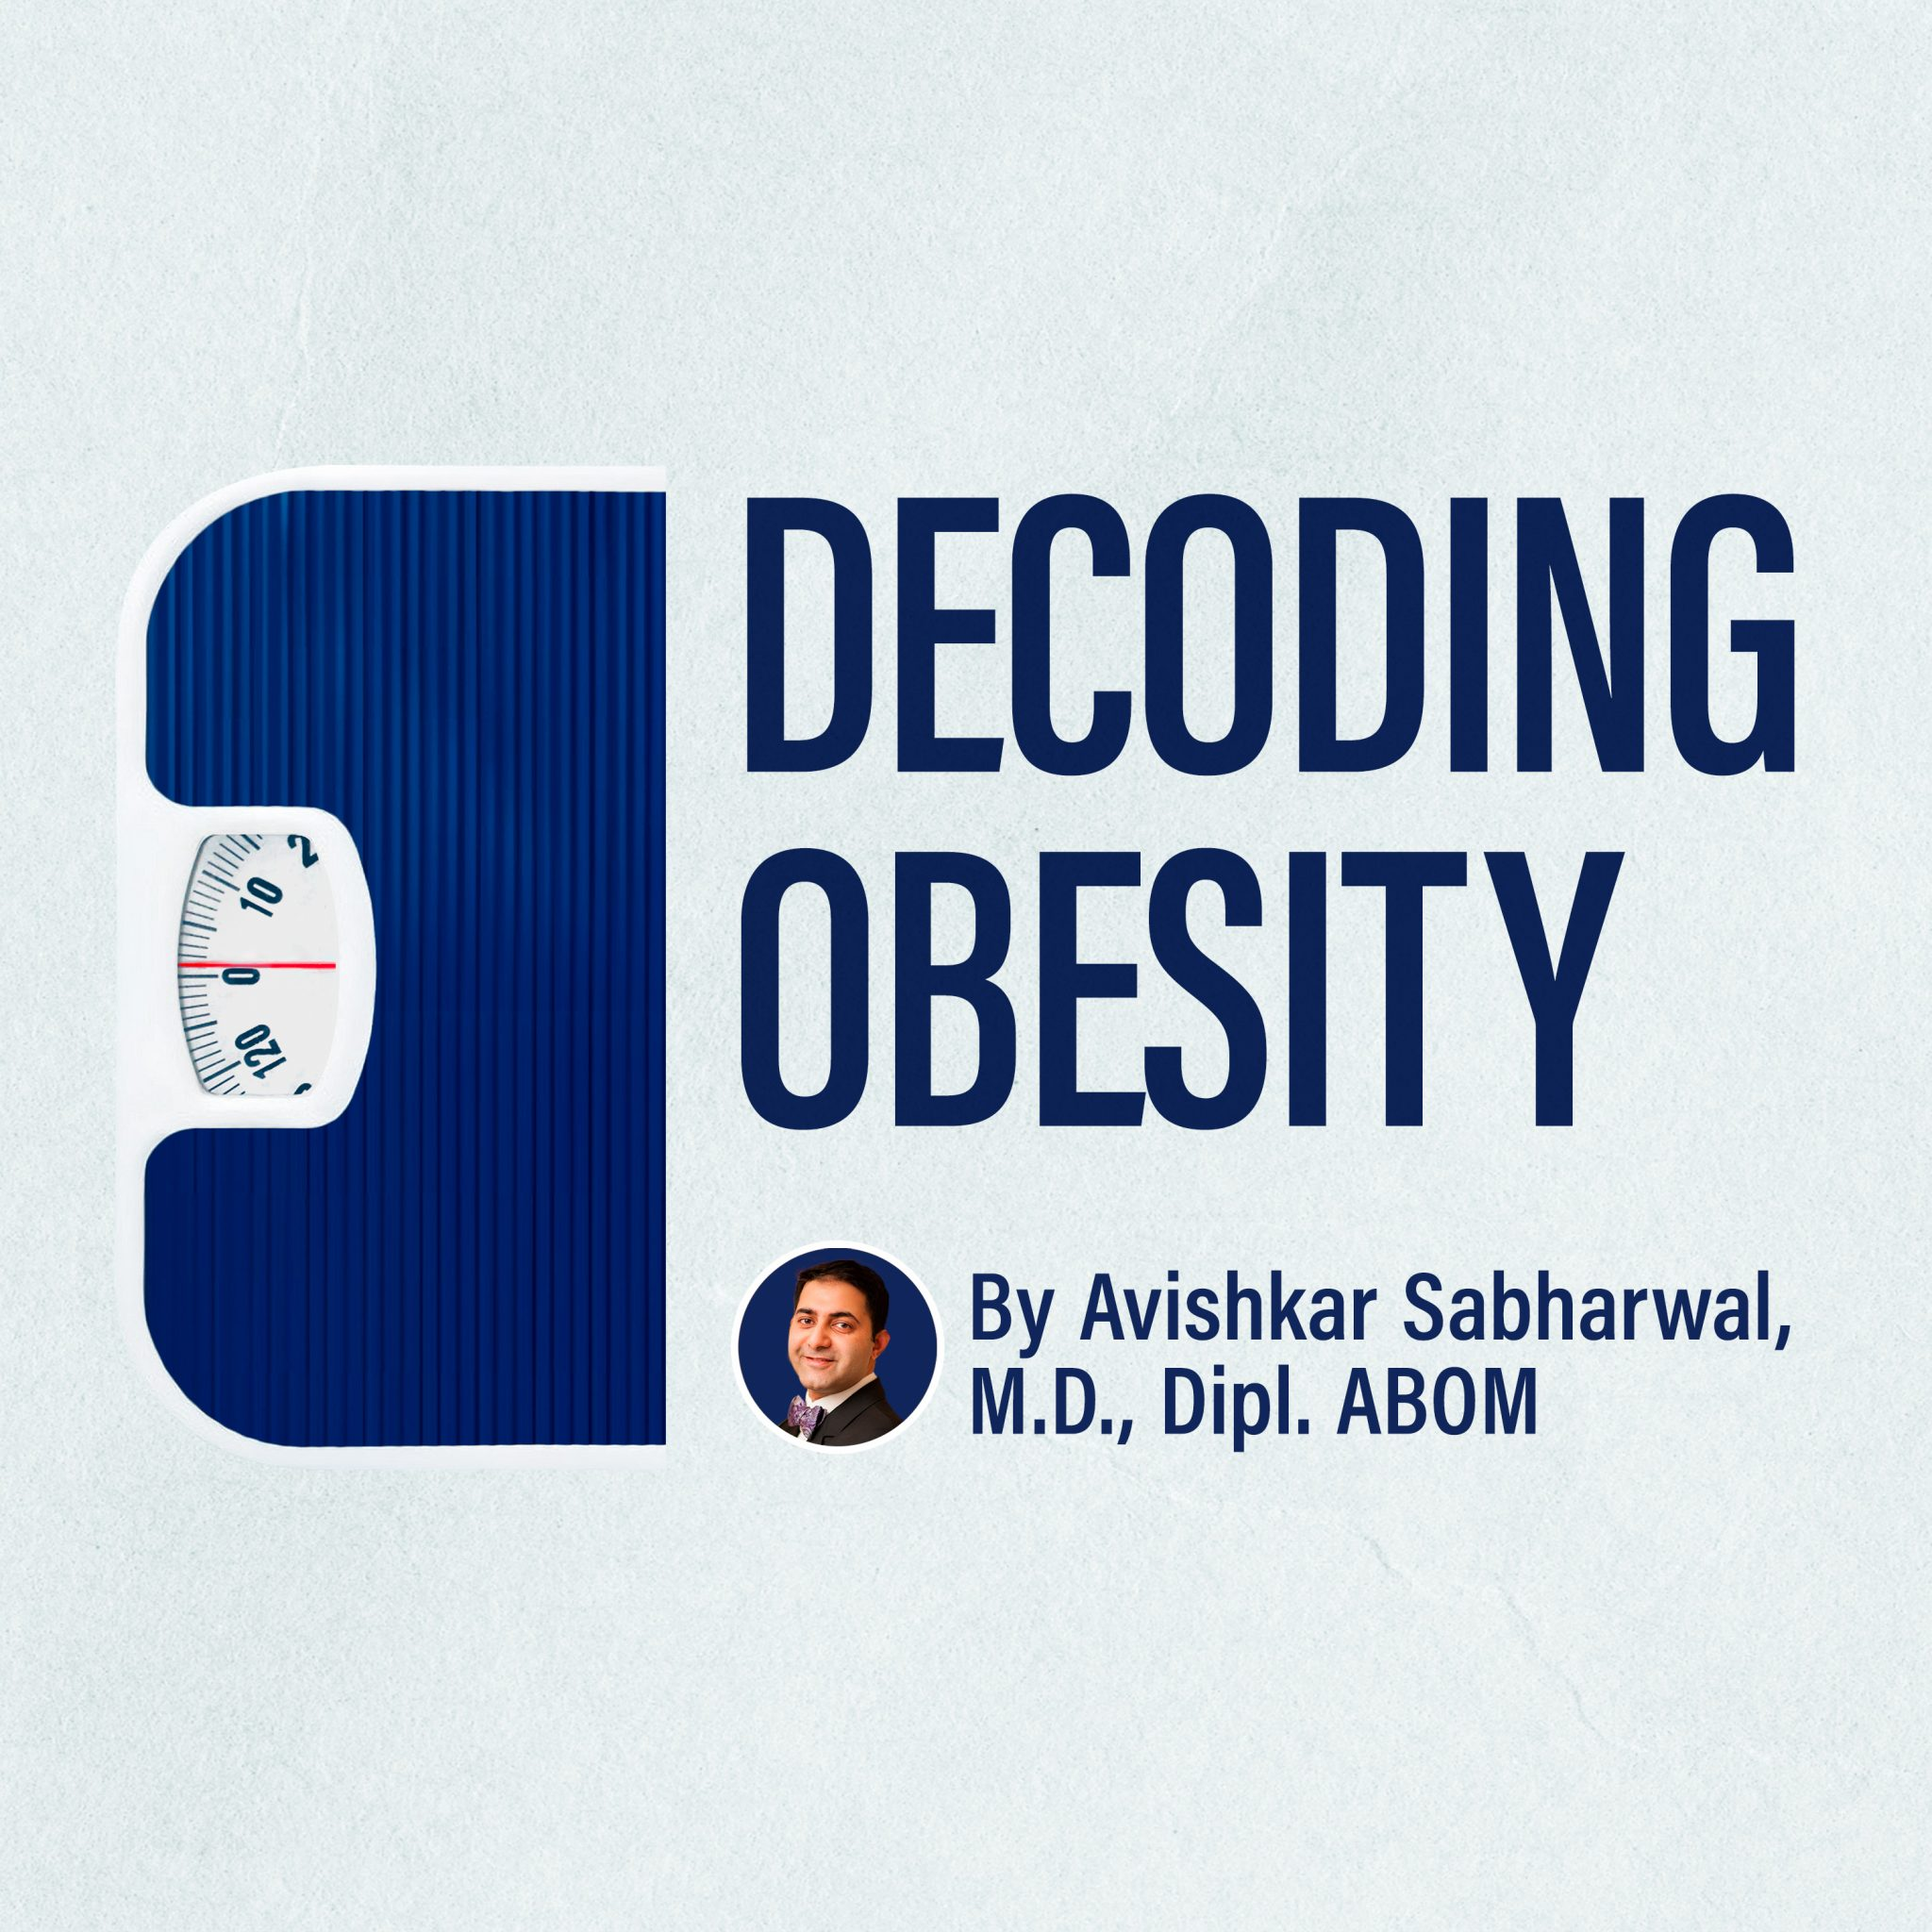 decoding obesity business logo